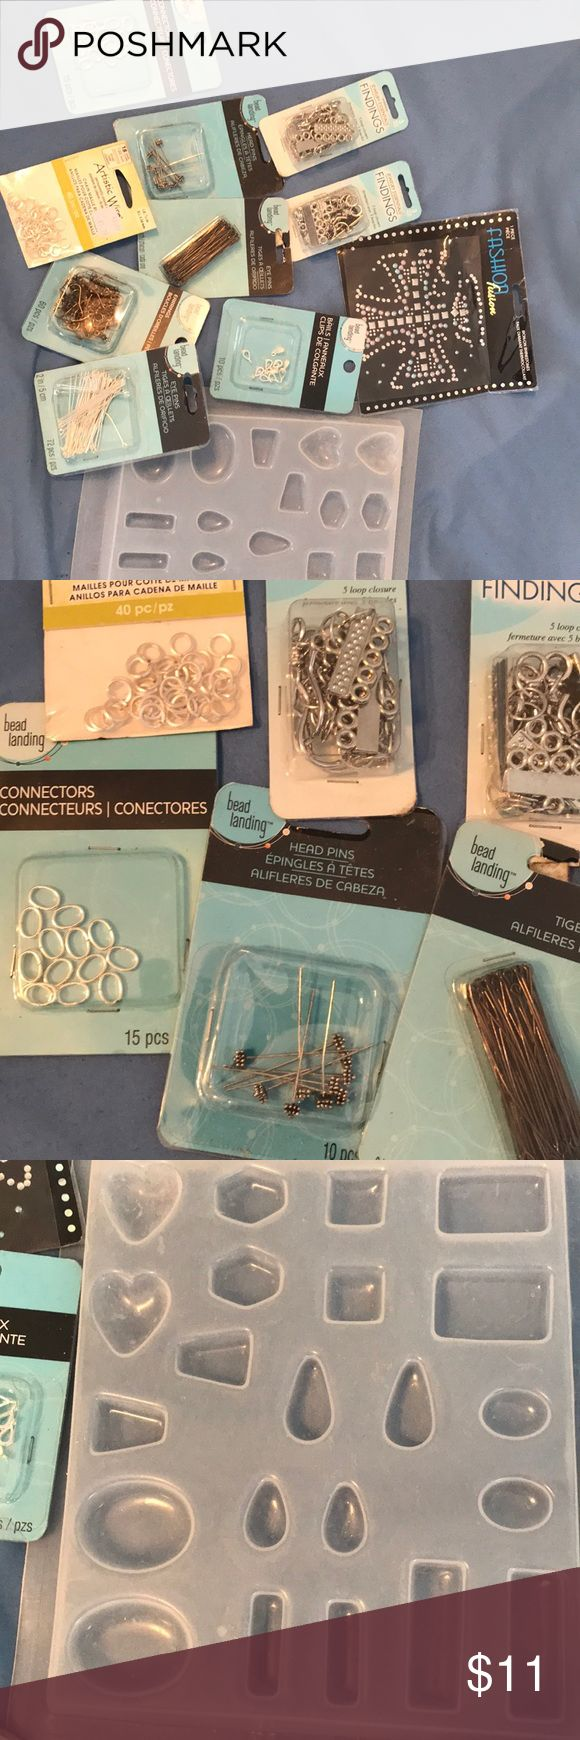 Random Jewelry Making Findings,Molds, And iron on Jewelry Making Findings , Plastic Molds , And An Iron On Accessories